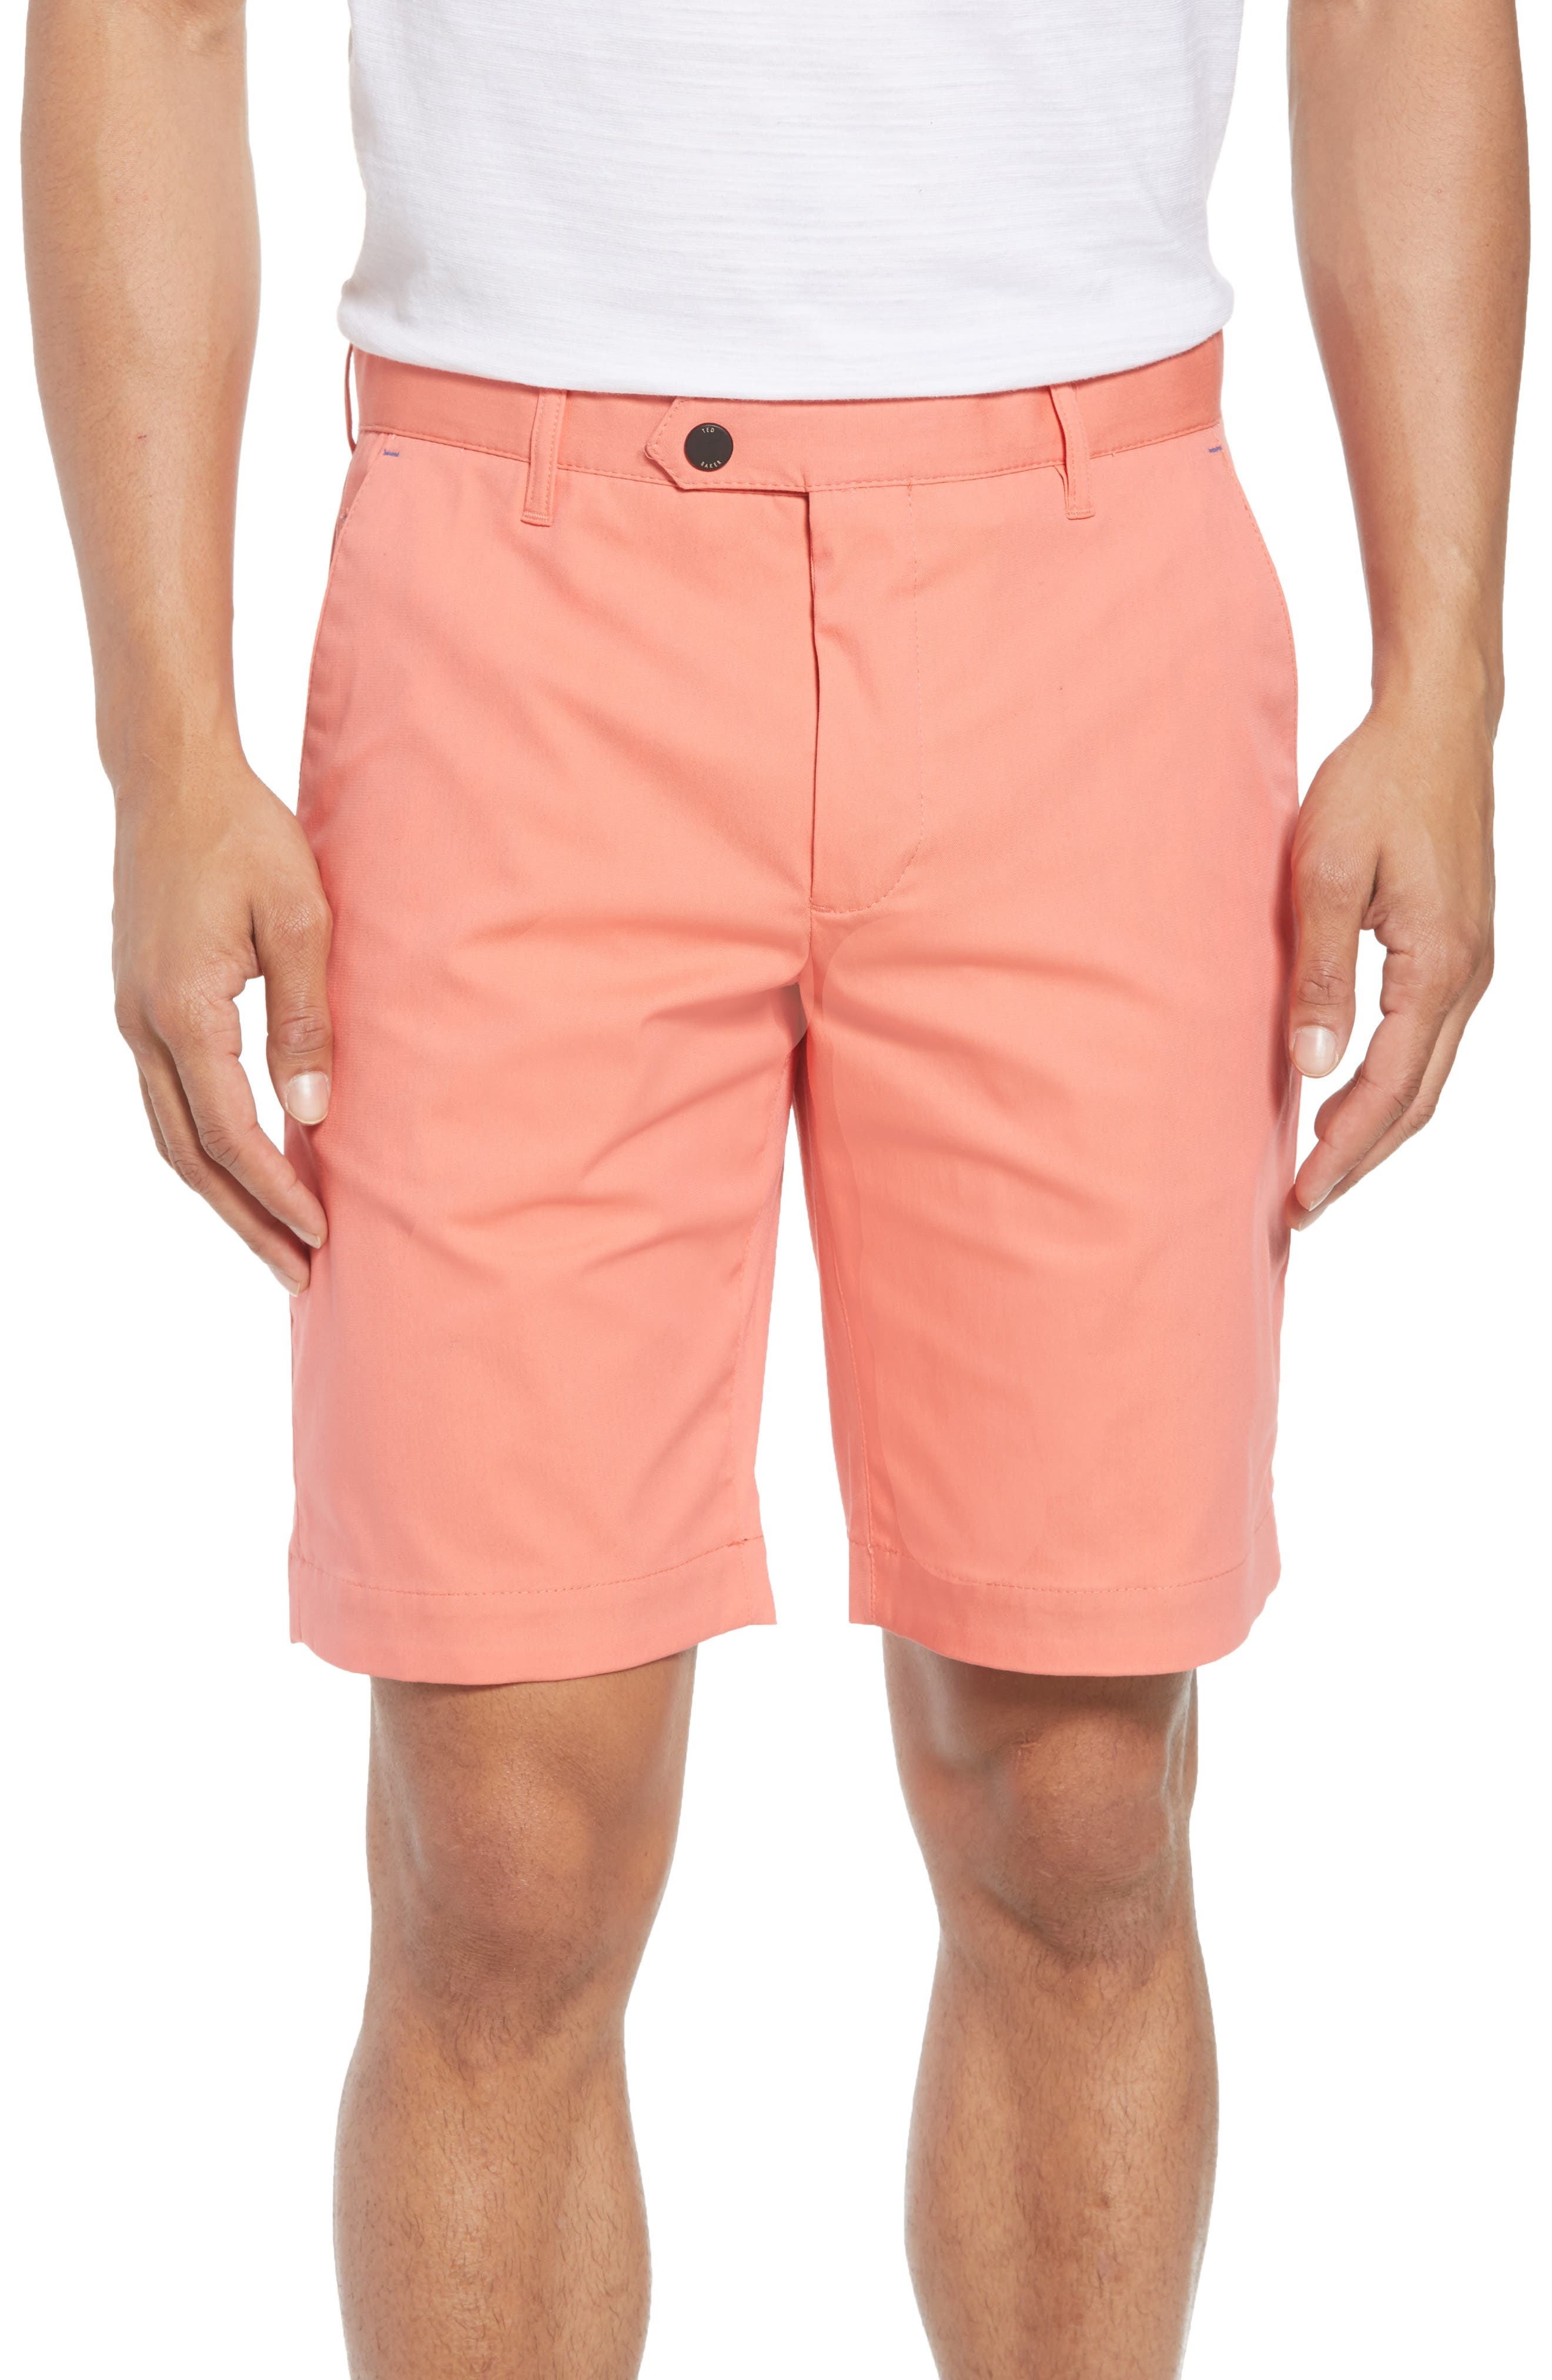 Twopar Flat Front Shorts,                             Main thumbnail 1, color,                             Coral